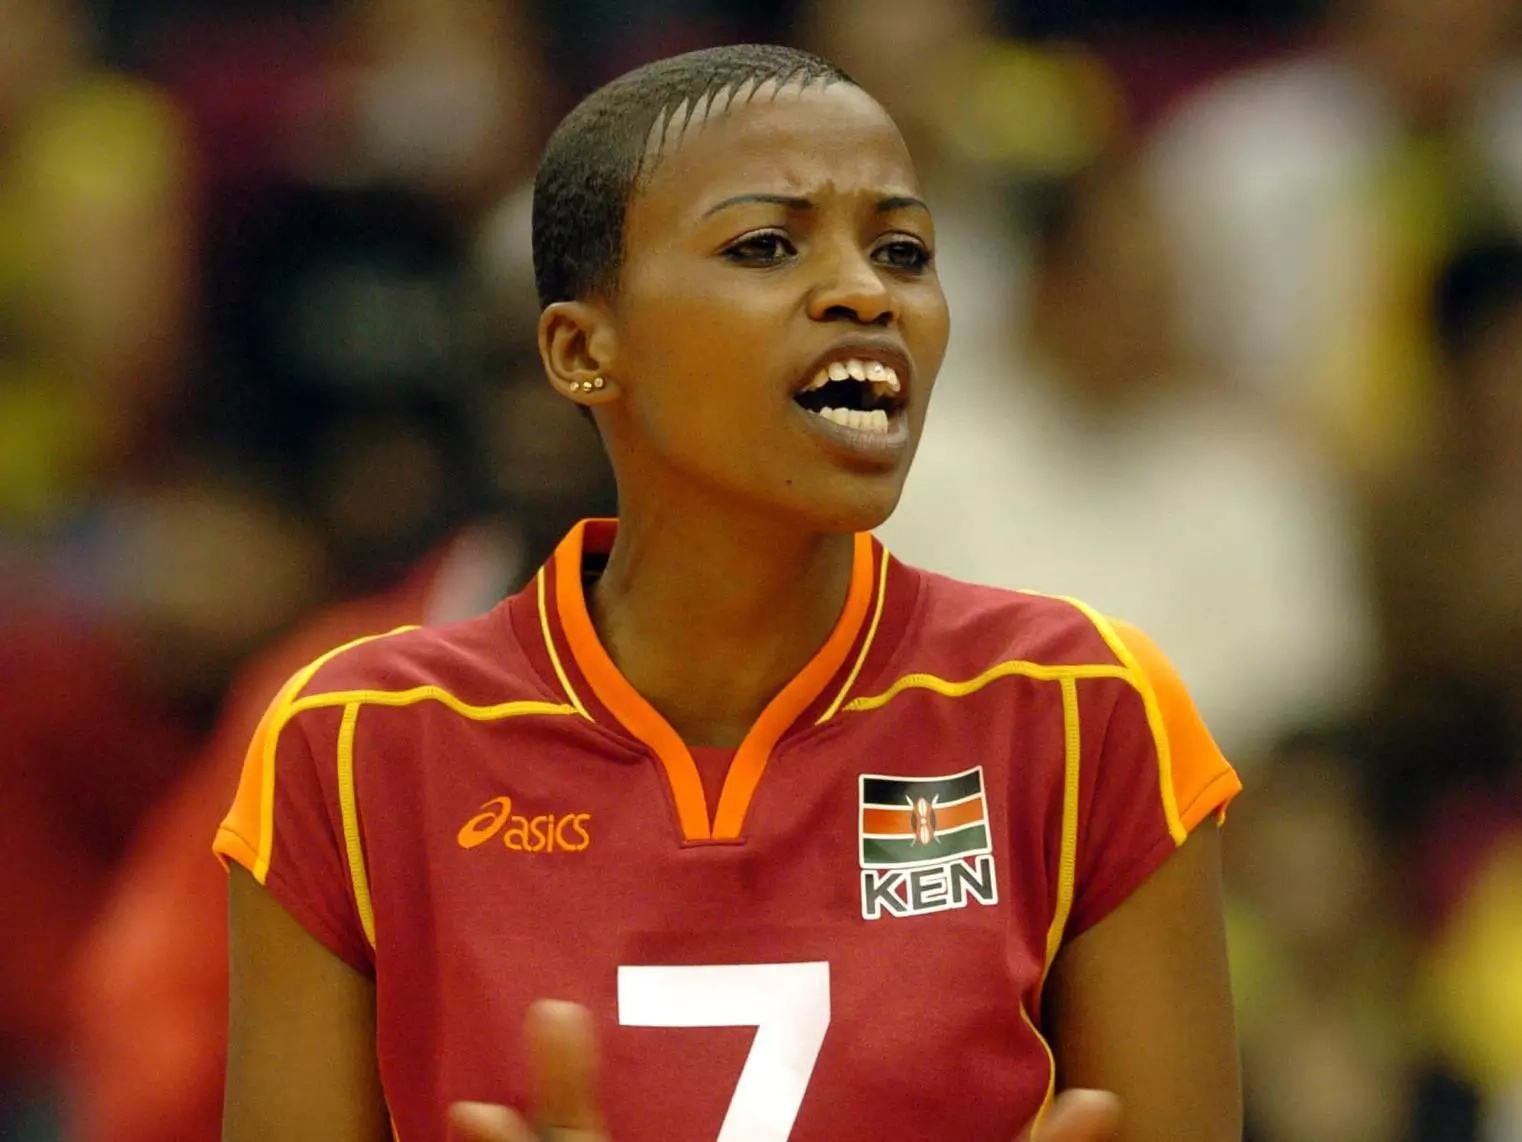 Kenya loses veteran female volleyball player to retirement